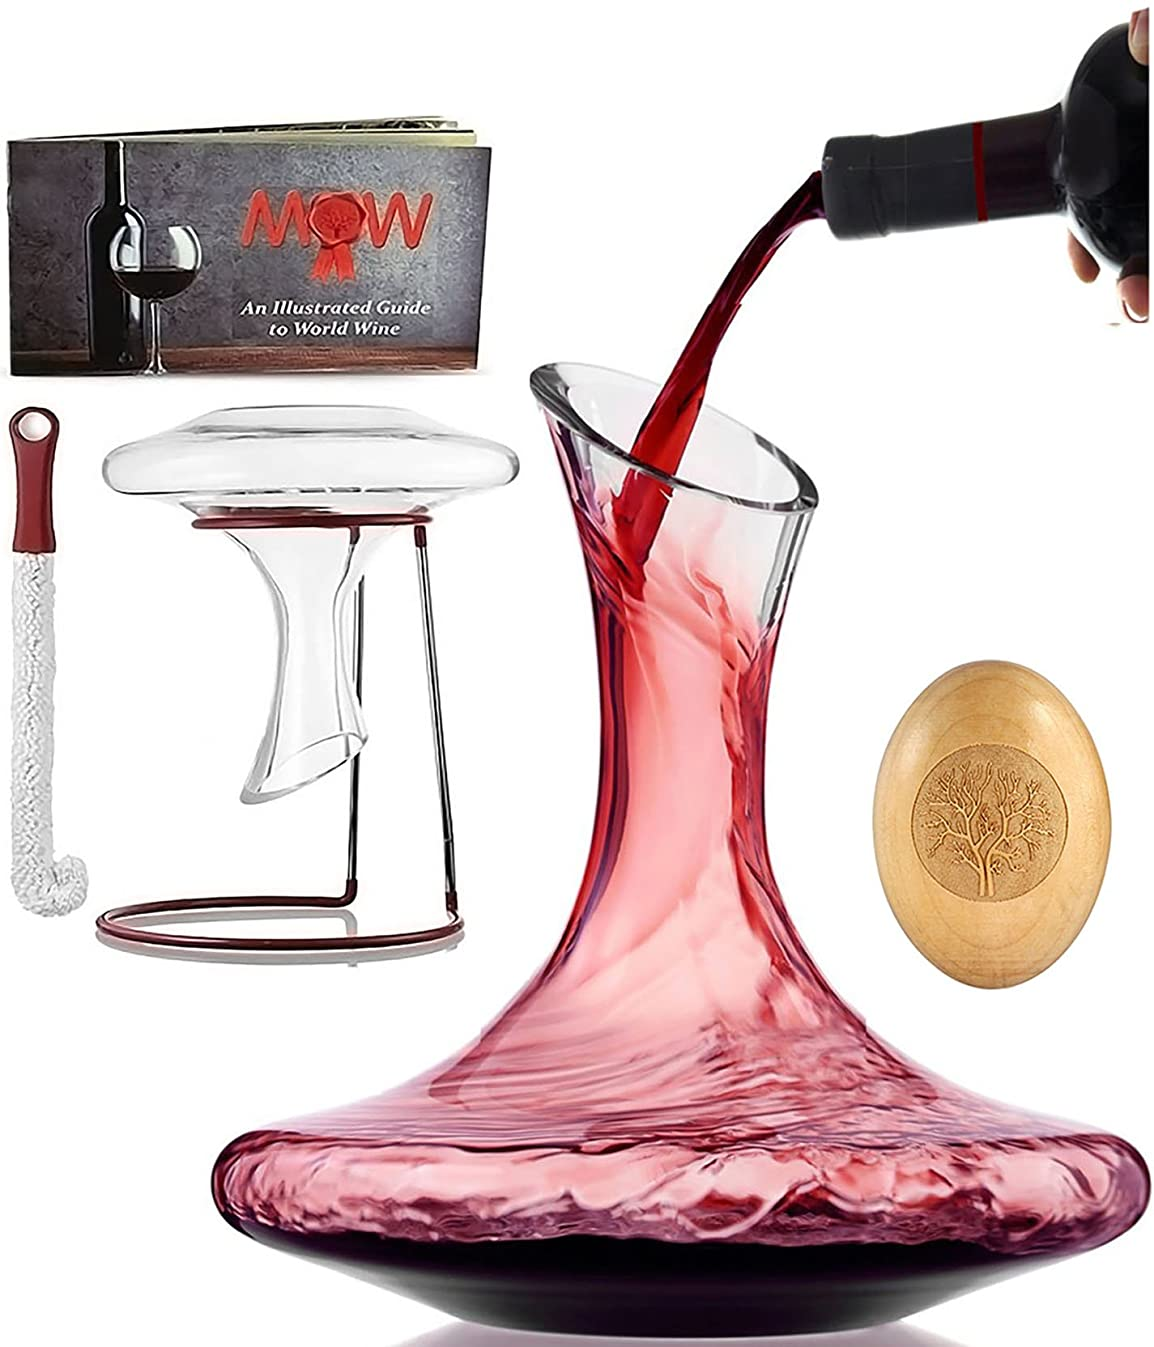 Wine Decanter Glass Carafe Set - Accessories Included Wood Stopper, Drying Stand, Cleaning Brush and Booklet in Deluxe Box| Durable Elegant Wine Aerator Great for Aerating the Wine Bouquet